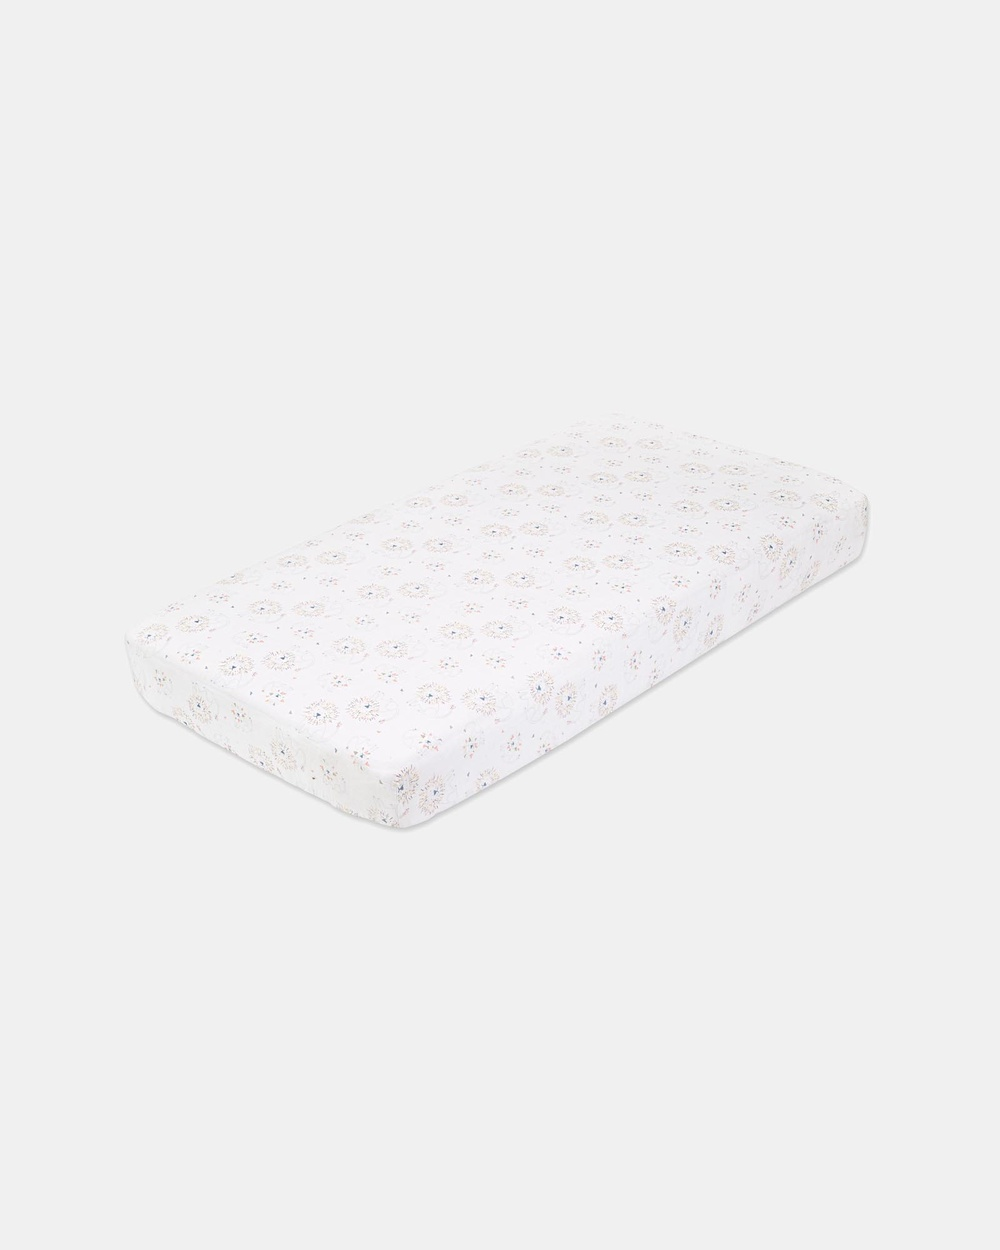 Aden & Anais Classic Muslin Fitted Single Cot Sheet Nursery Leader of the Pack